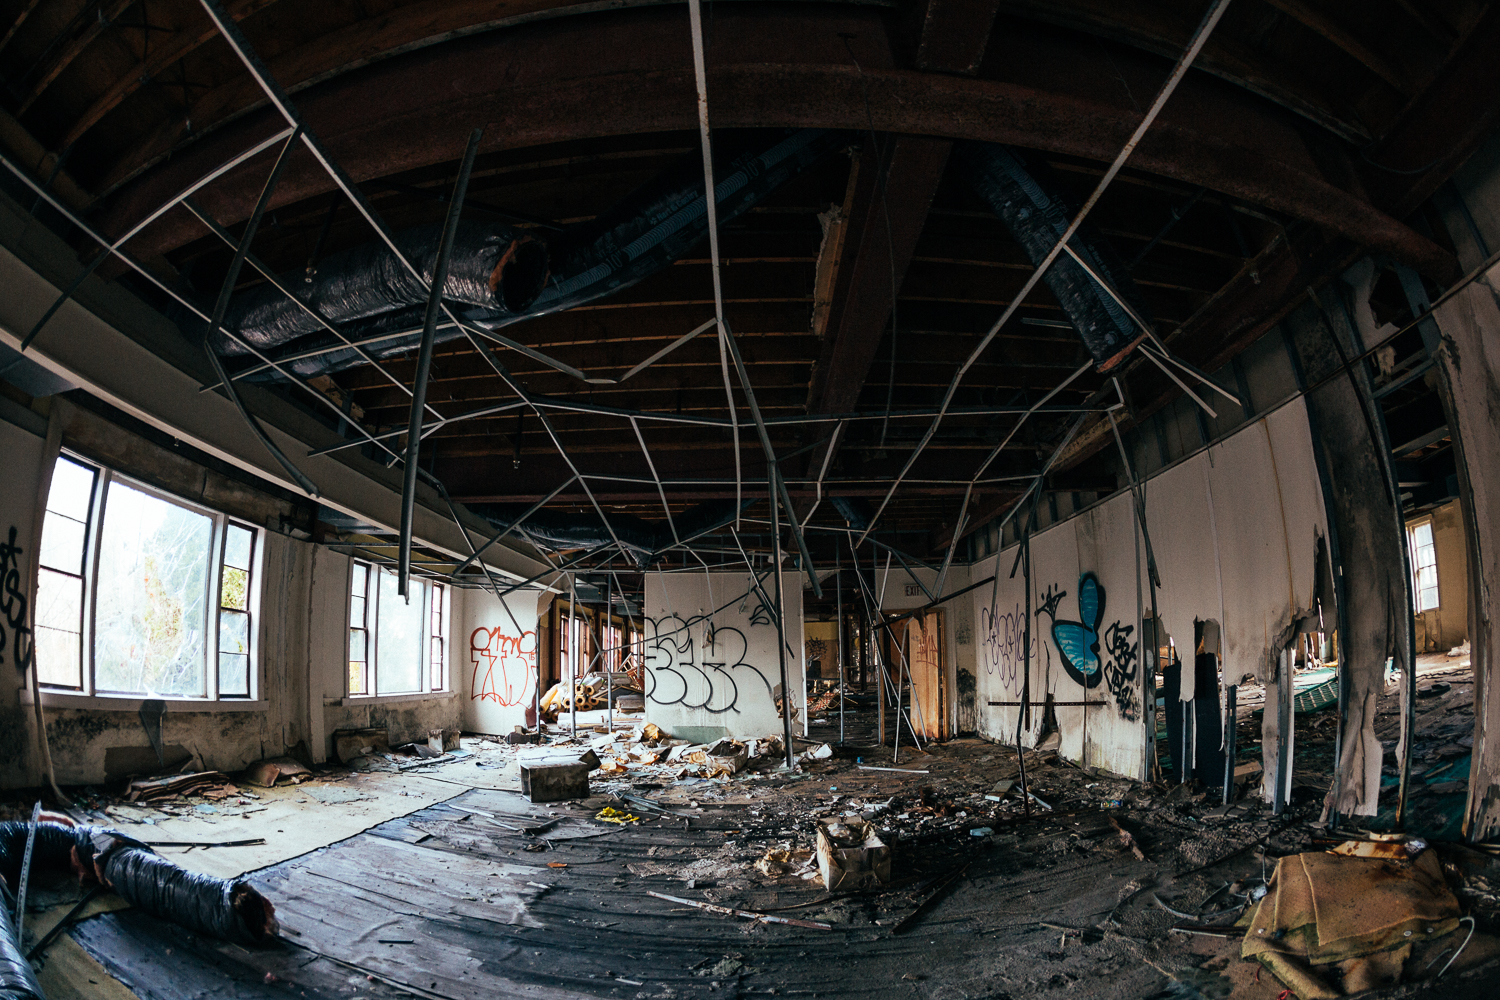 Roofs falling in, asbestos infested walls, soggy floors collapsing. This is why it's off limits!